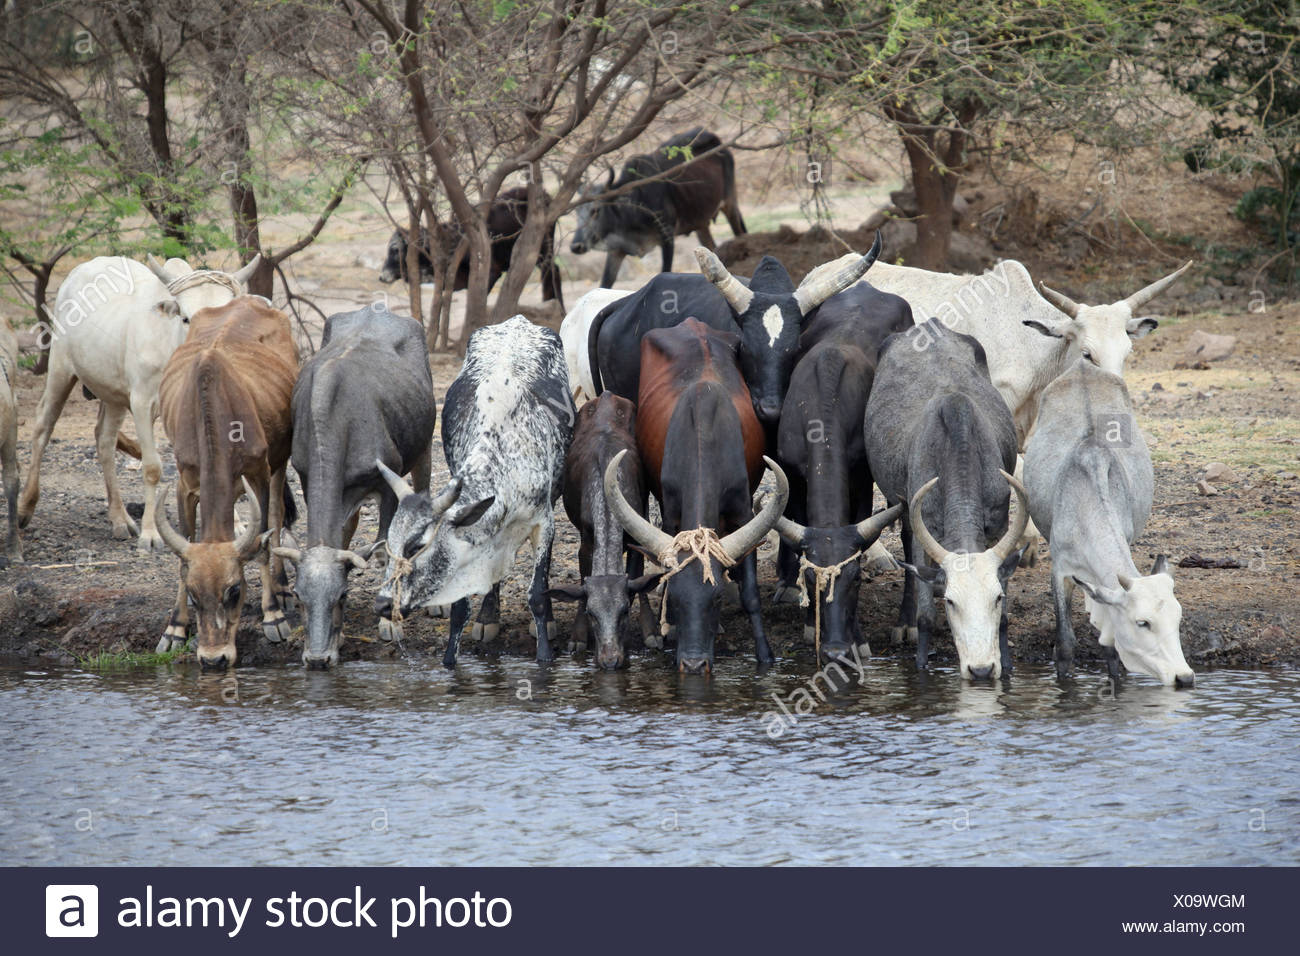 Cows, Awasch, Africa, cow, cows, watering hole, watering place, Ethiopia, Africa - Stock Image